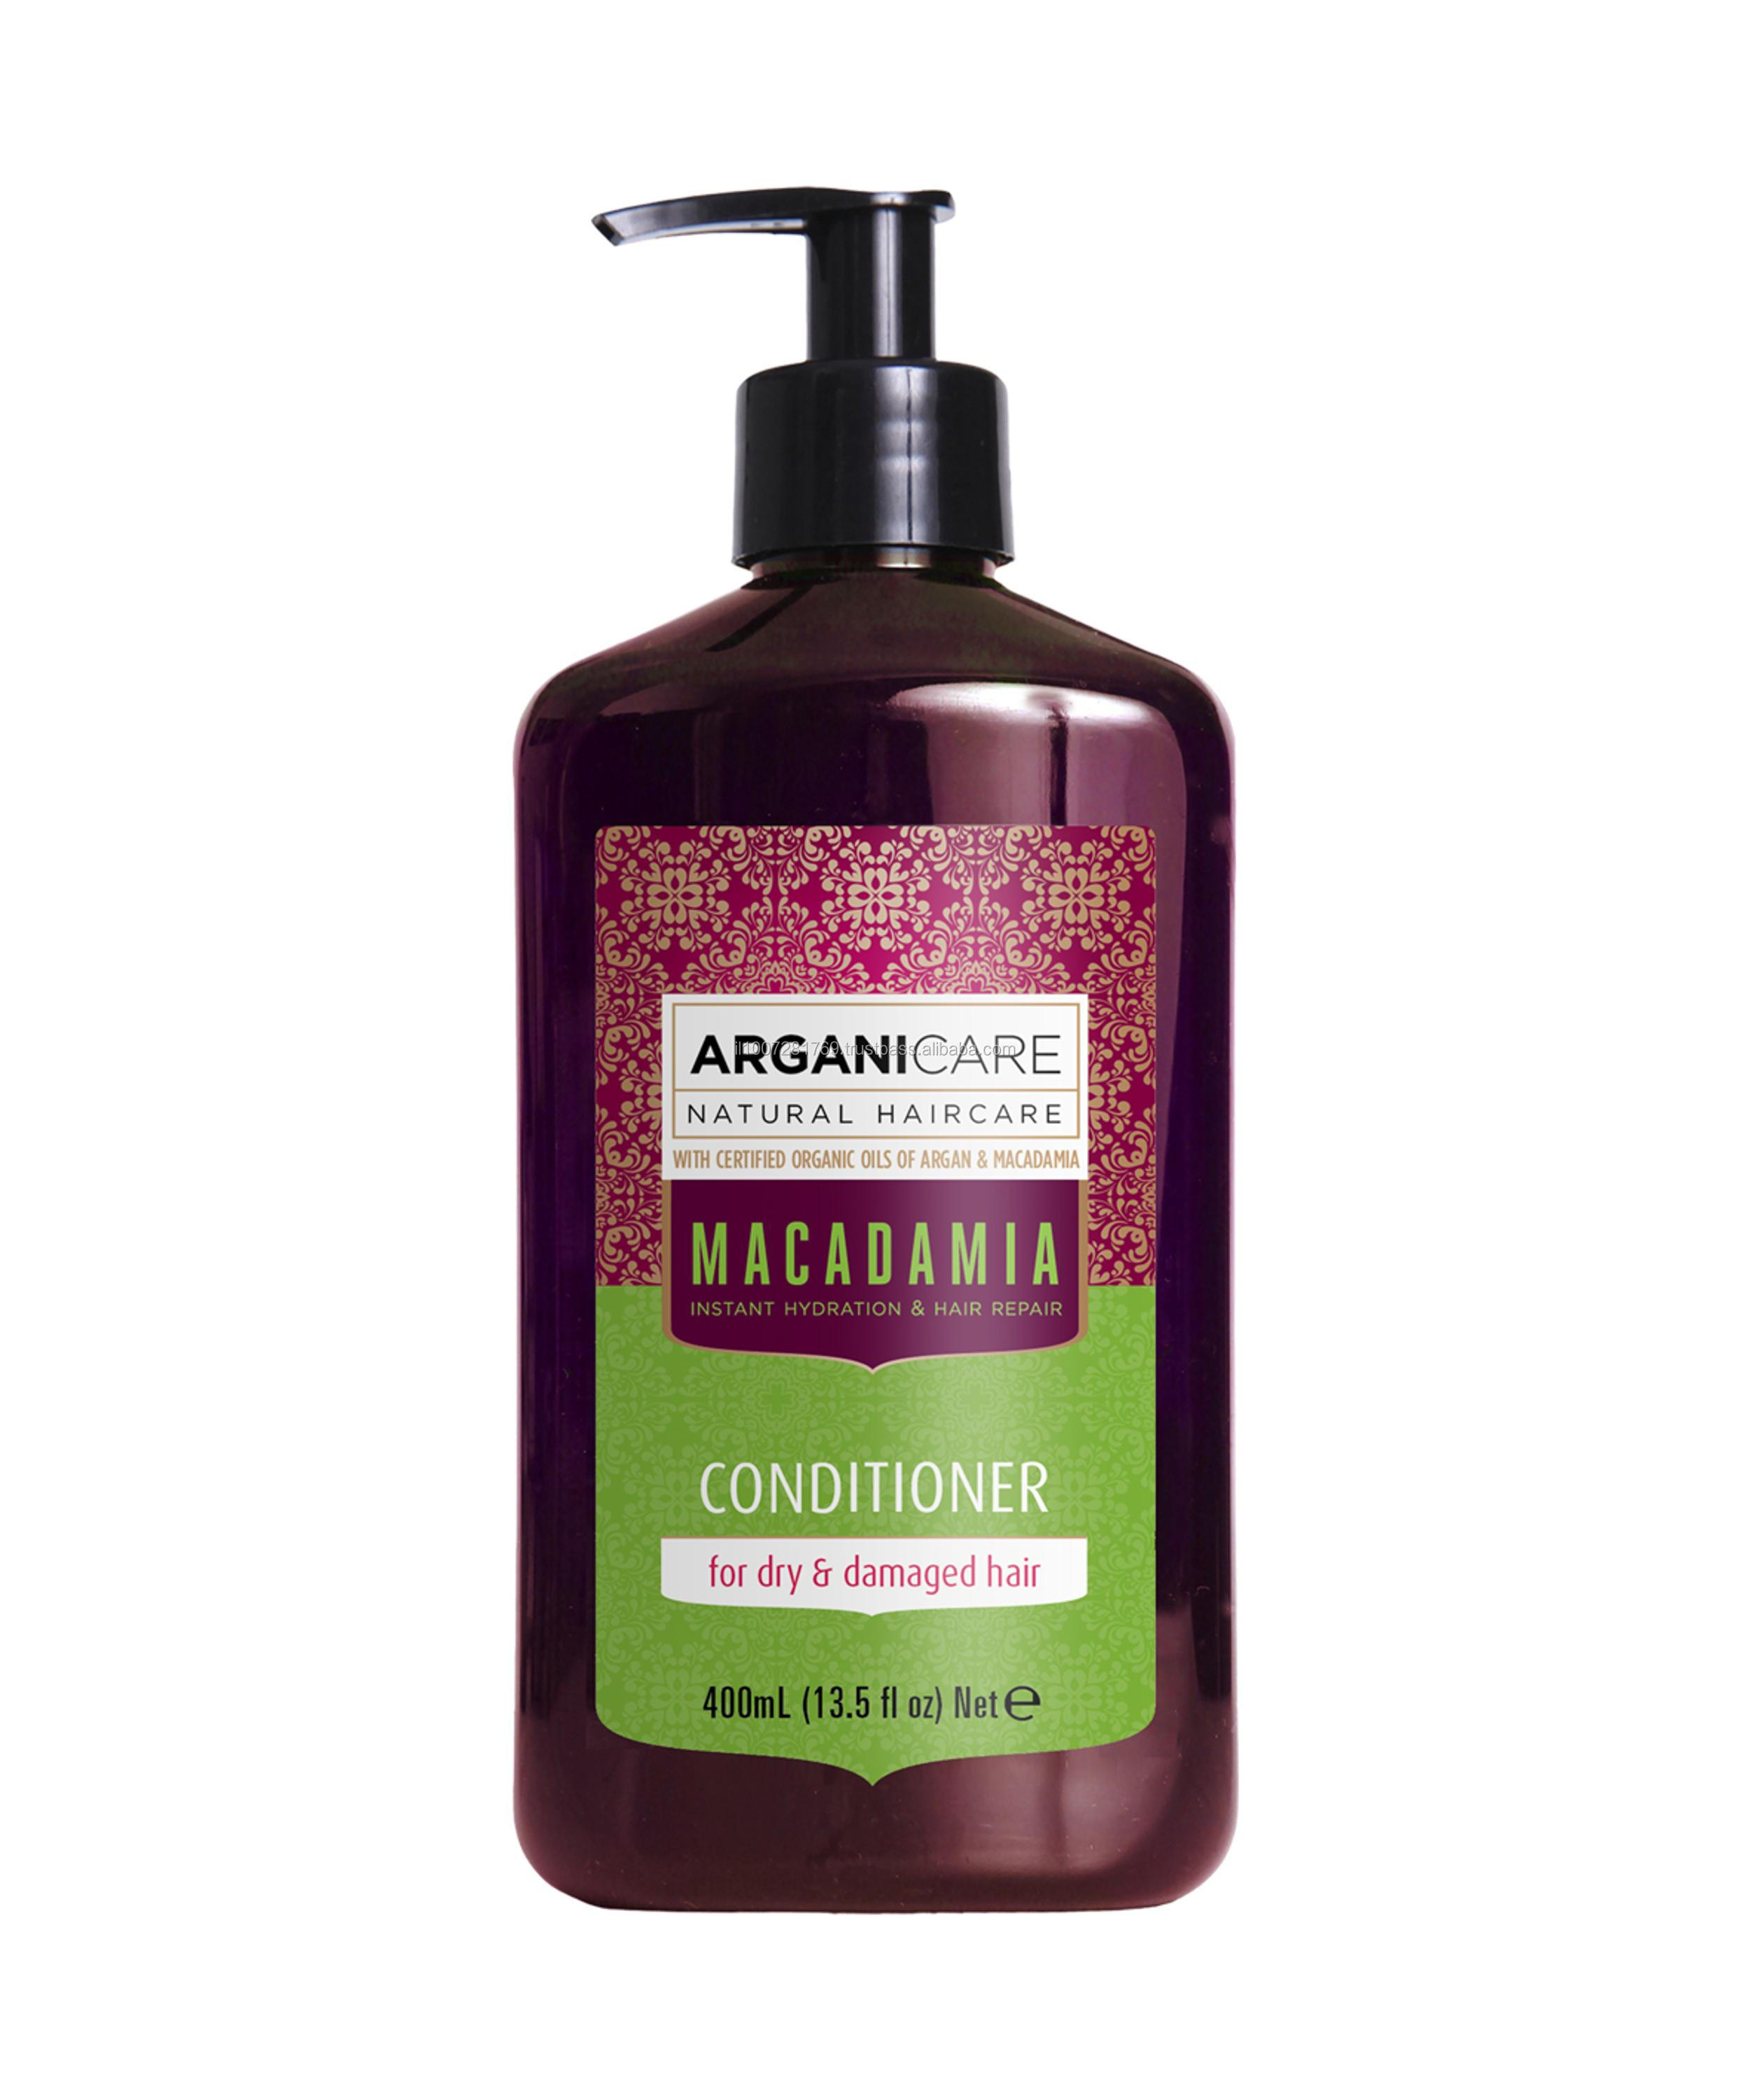 Conditioner - 400 ml - for dry & damaged hair